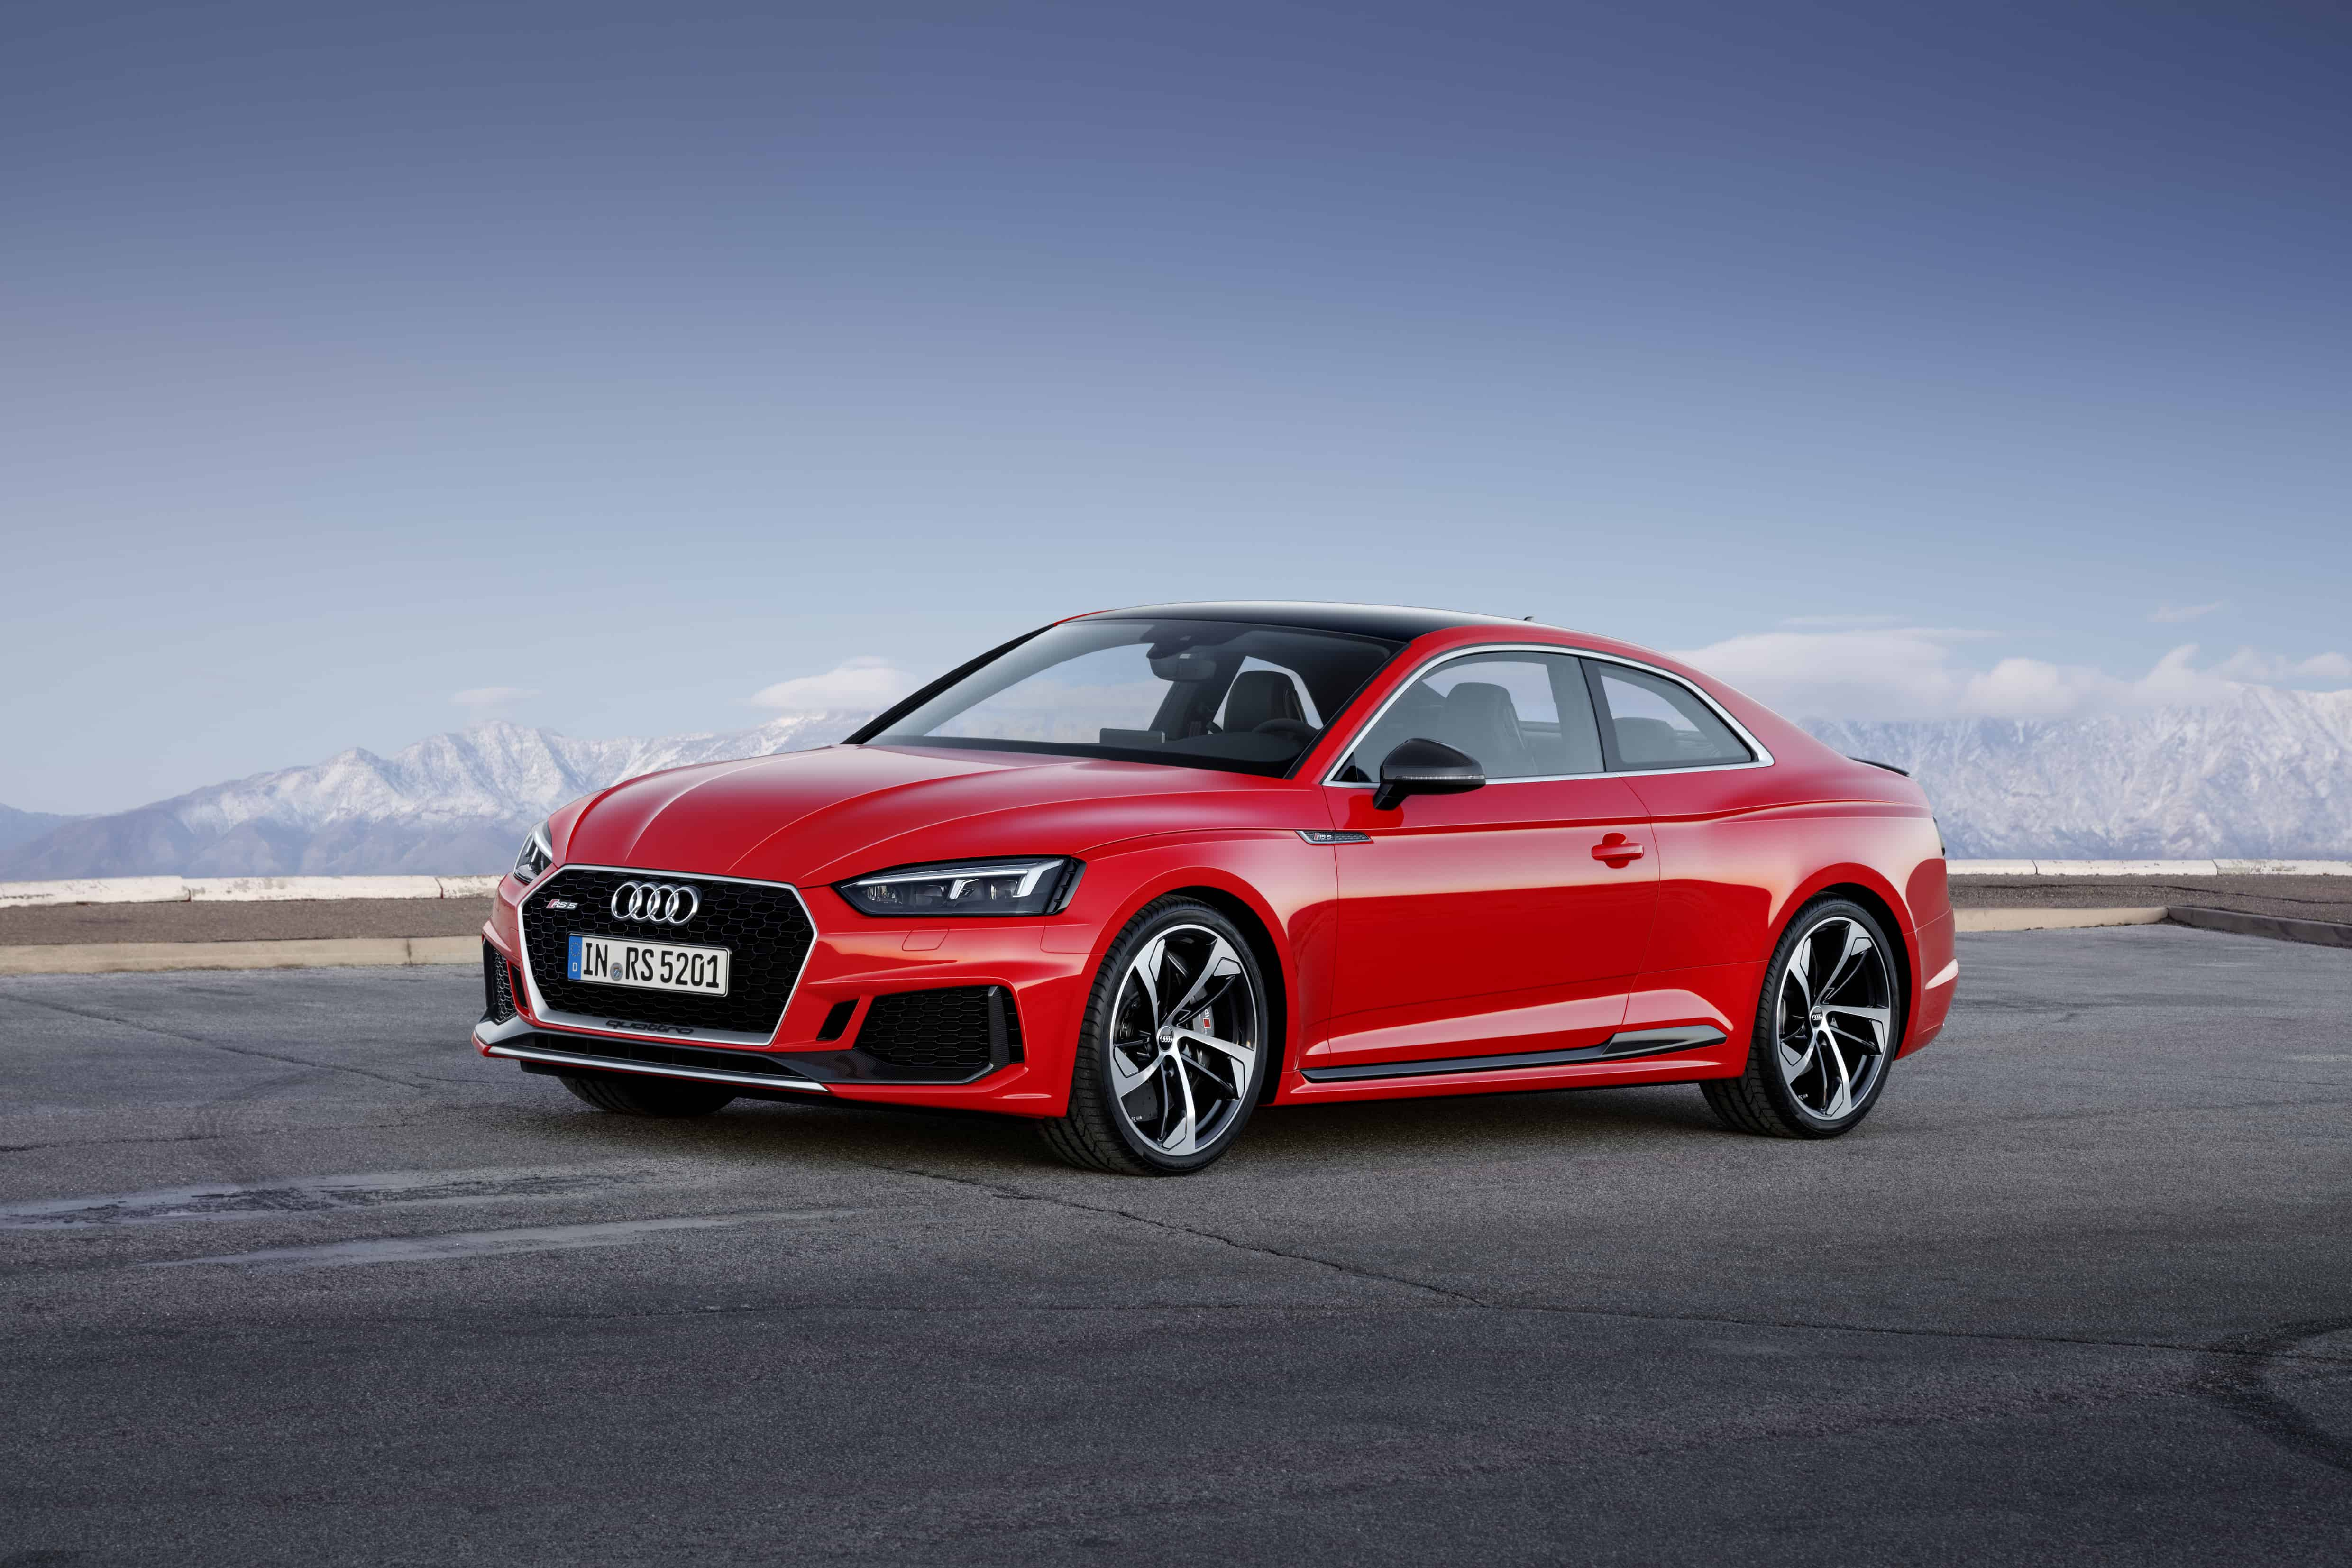 Audi RS5 F5 Misano Red